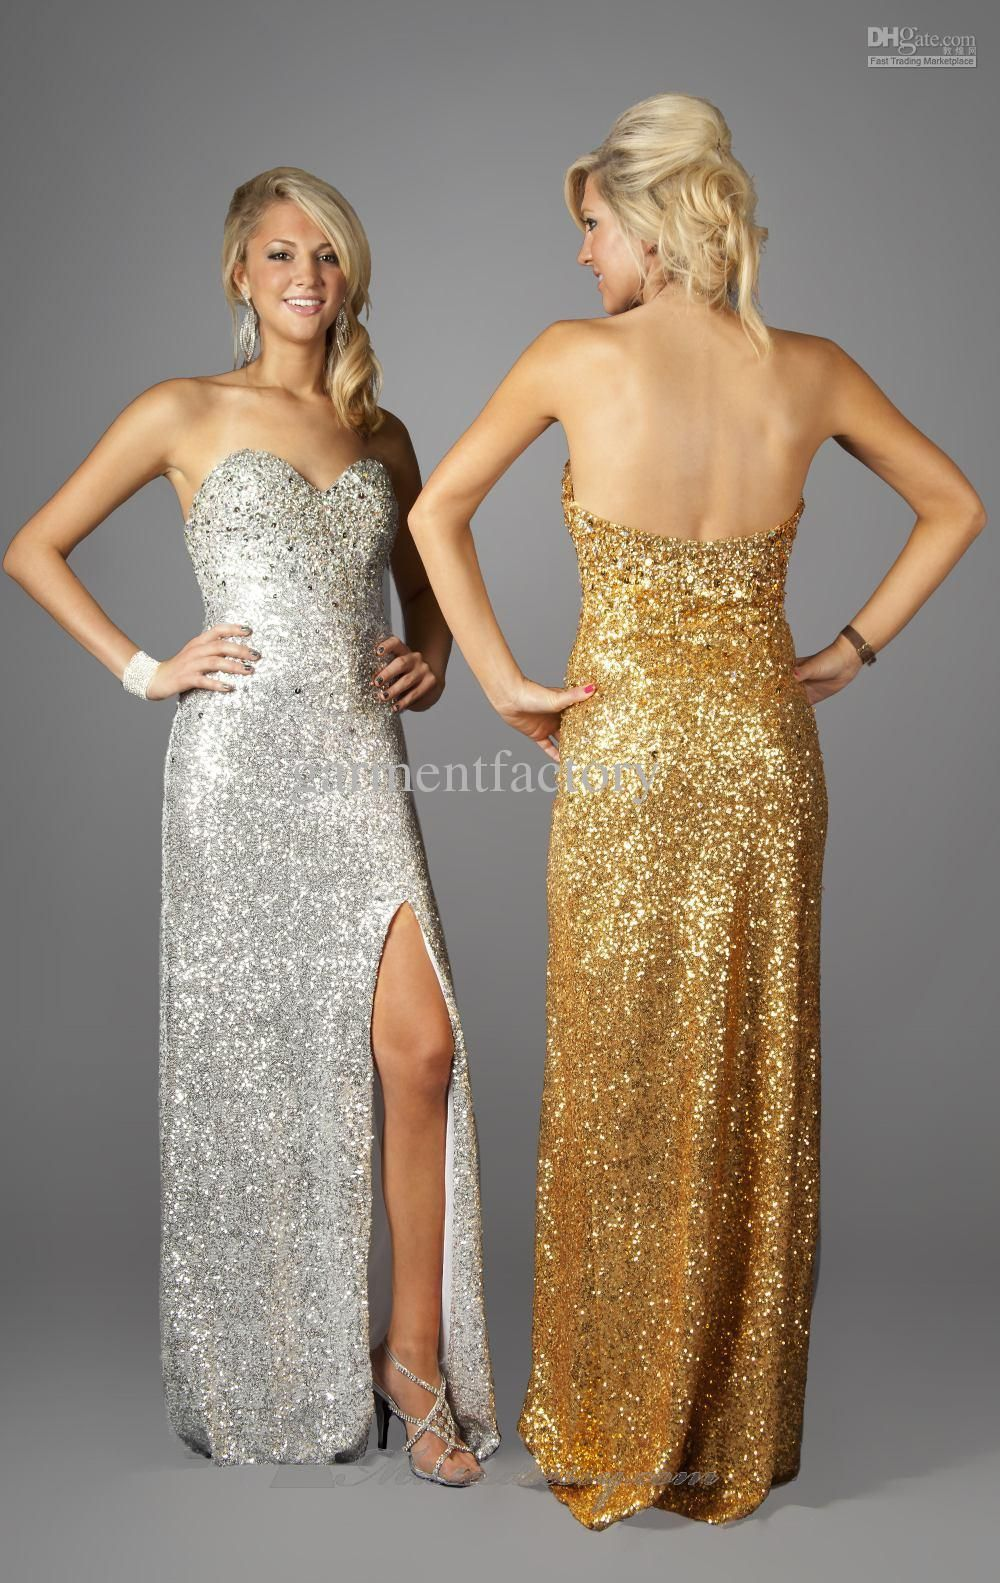 Tony bowls le gala google search in gods hands pinterest tony bowls le gala google search in gods hands pinterest girls pageant dresses sparkly bridesmaid dress and products ombrellifo Image collections